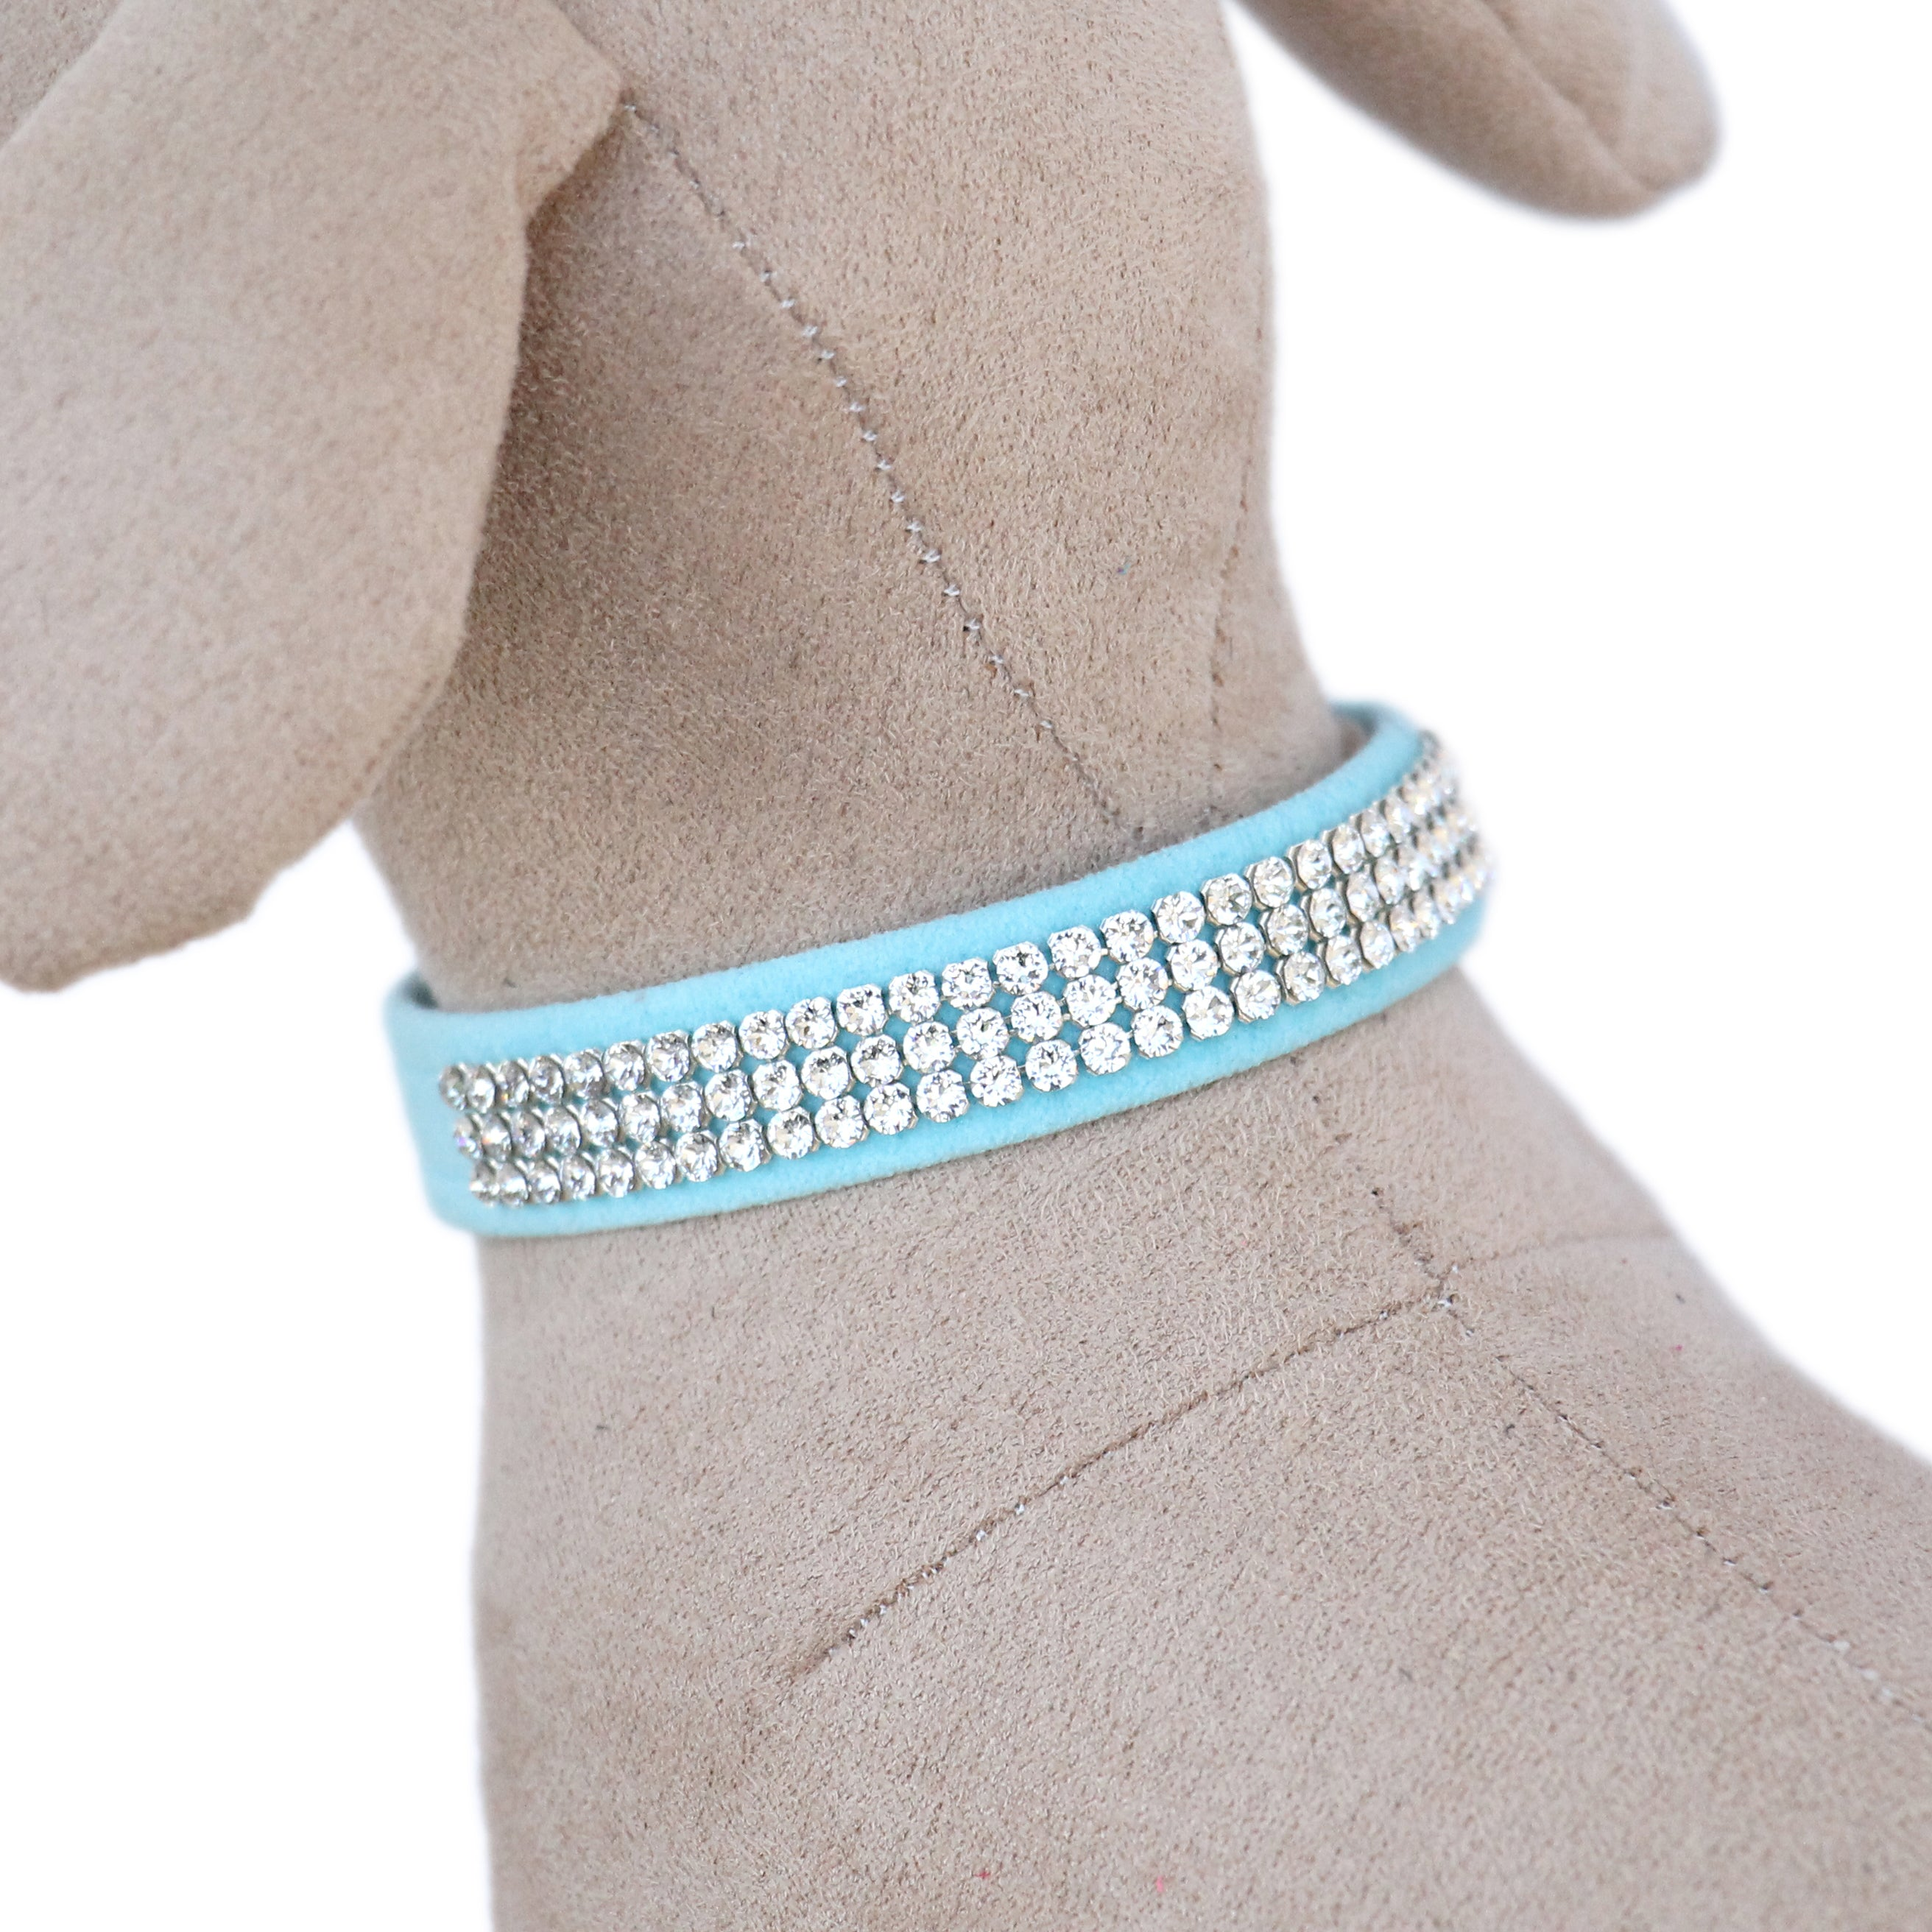 Giltmore 3-Row Crystal Pet Collar: Tiffy Blue